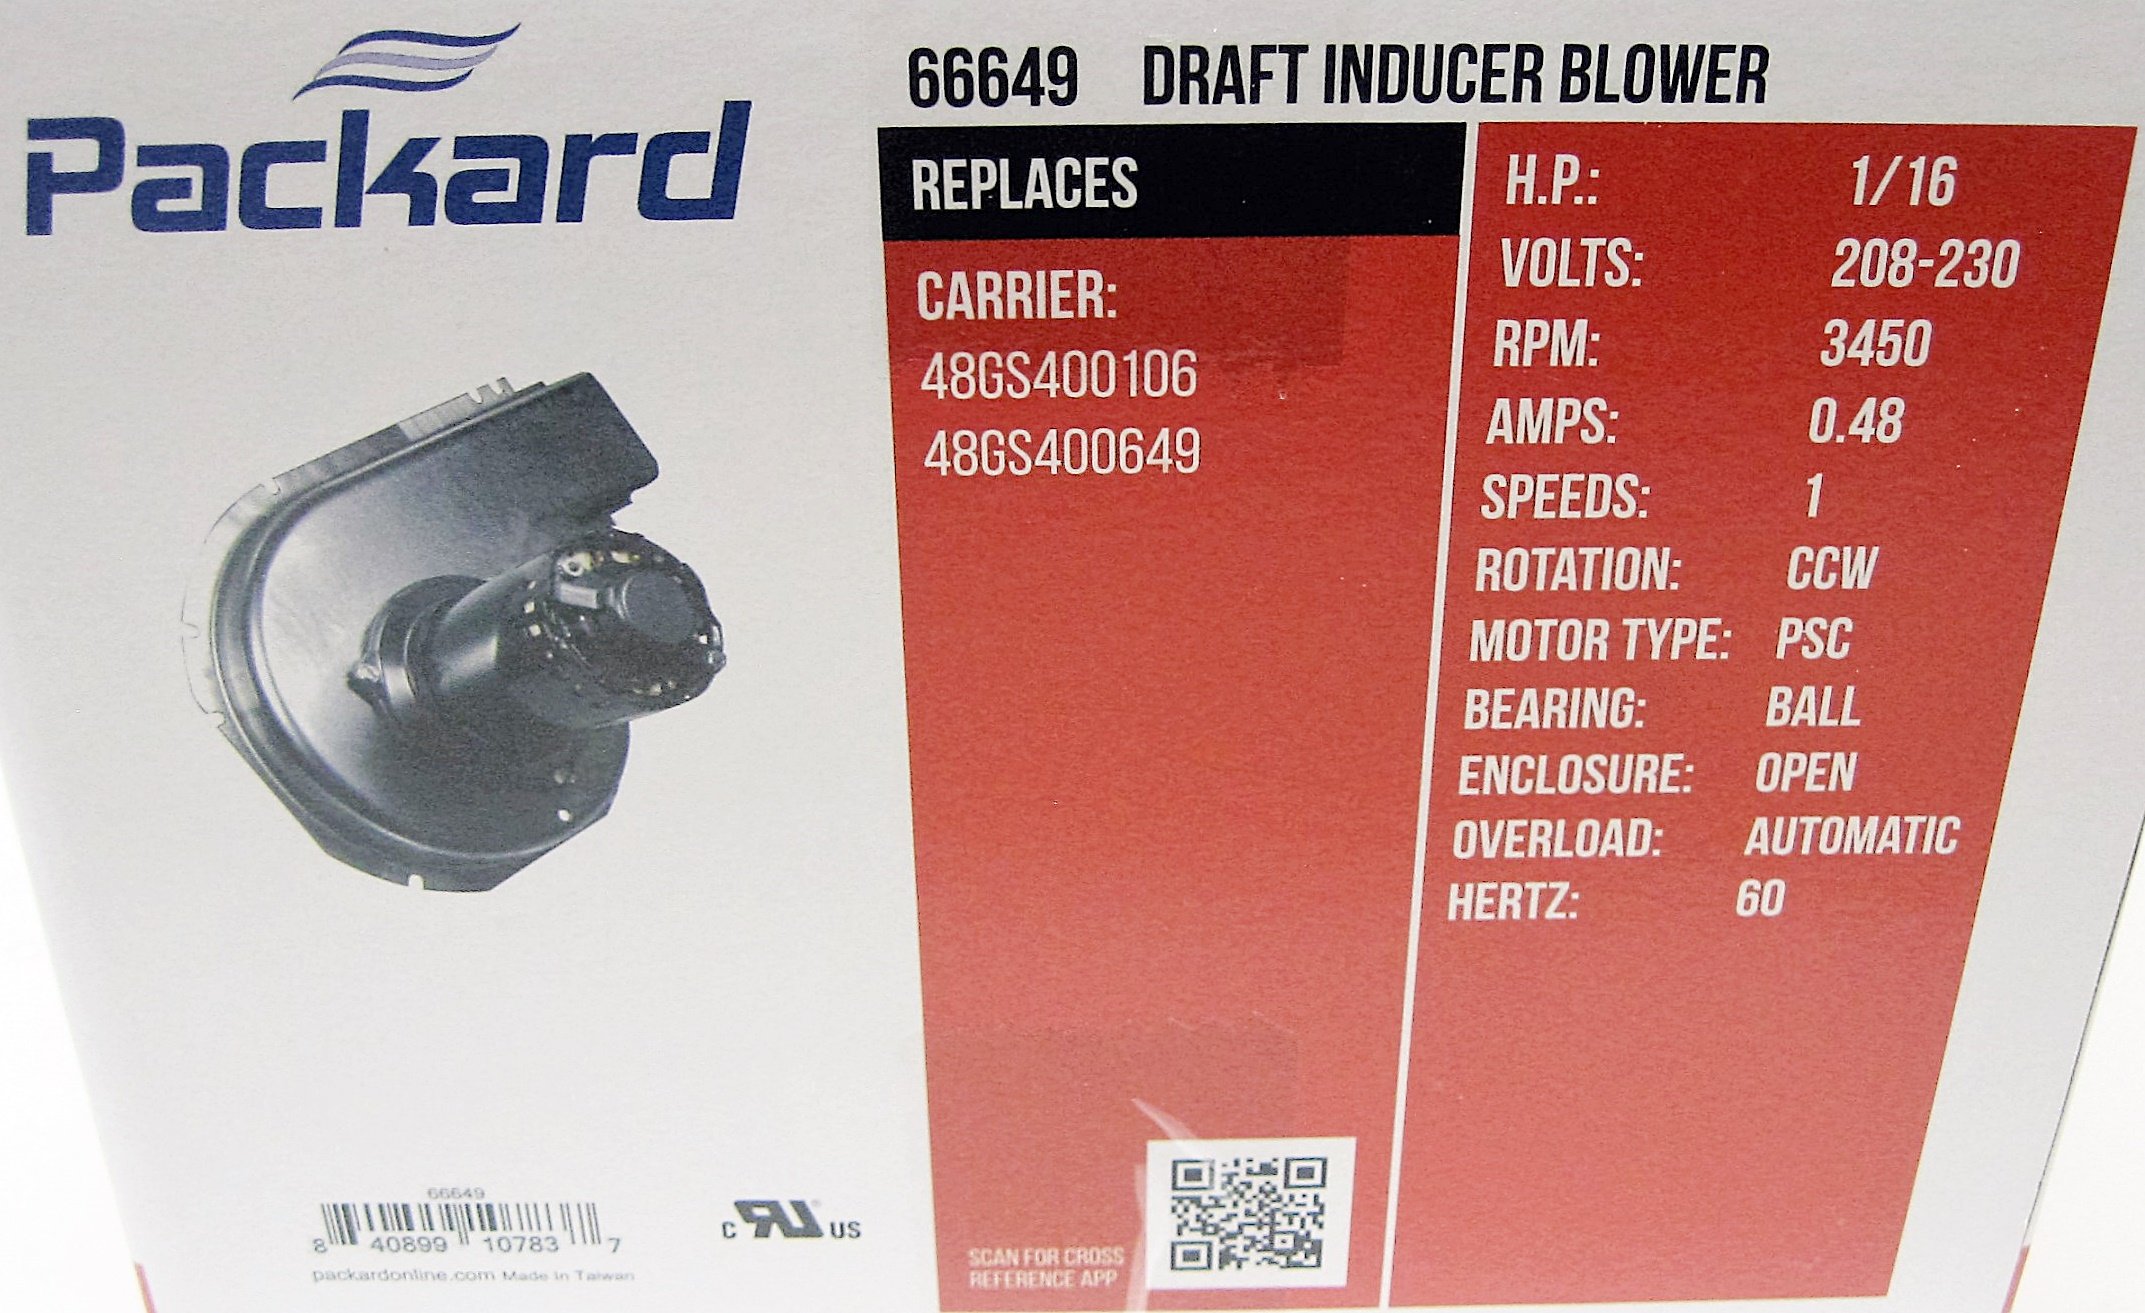 66649 packard draft inducer furnace blower motor for carrier 66649 packard draft inducer furnace blower motor for carrier 48gs400106 48gs400649 walmart publicscrutiny Choice Image